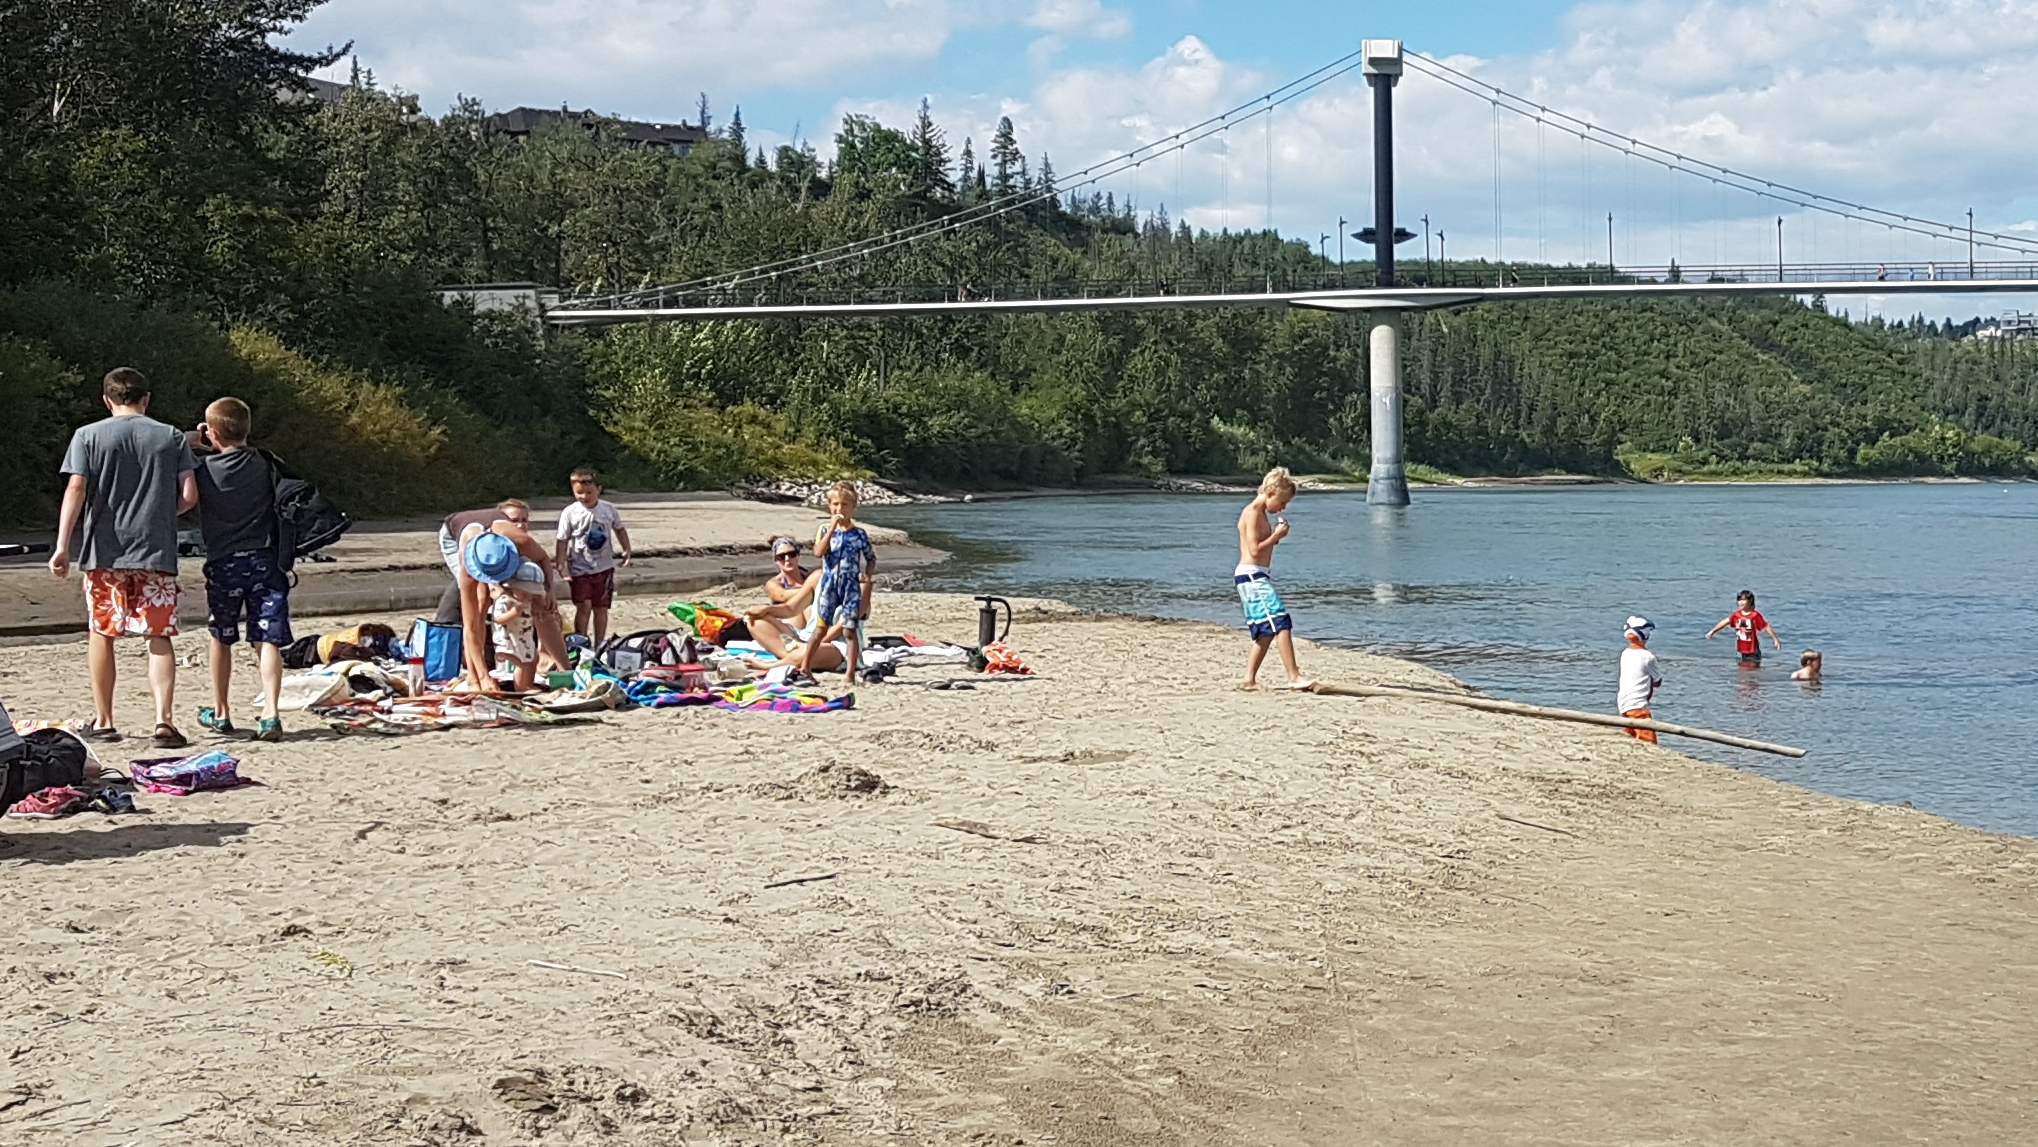 Swimming in the North Sask – August 15 test results